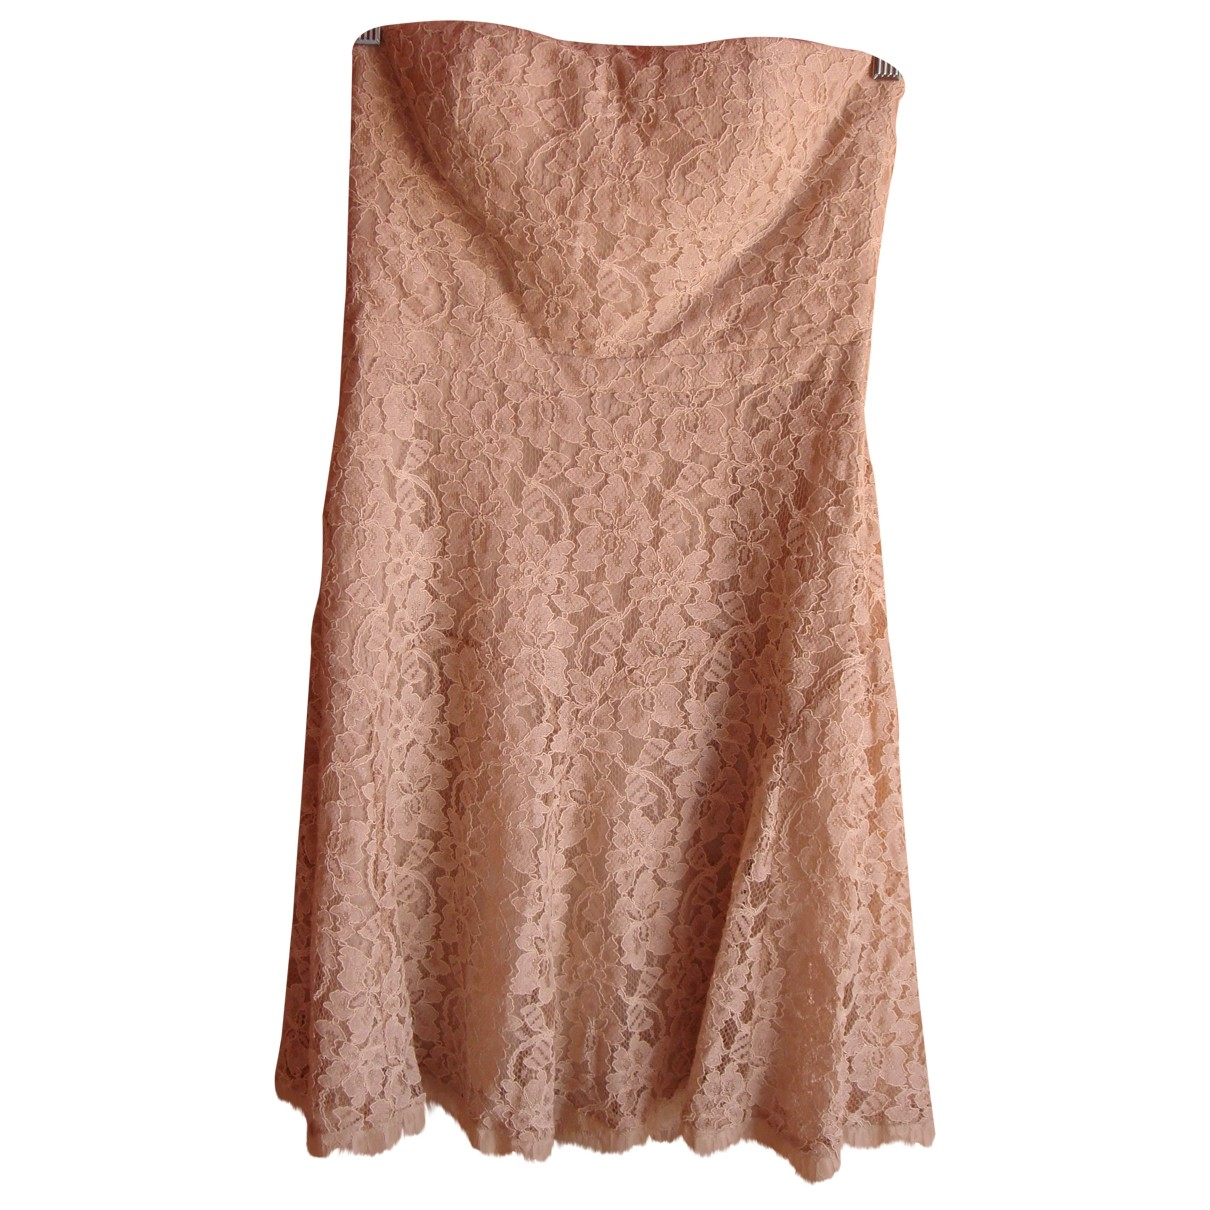 Diane Von Furstenberg \N Beige Lace dress for Women 6 US